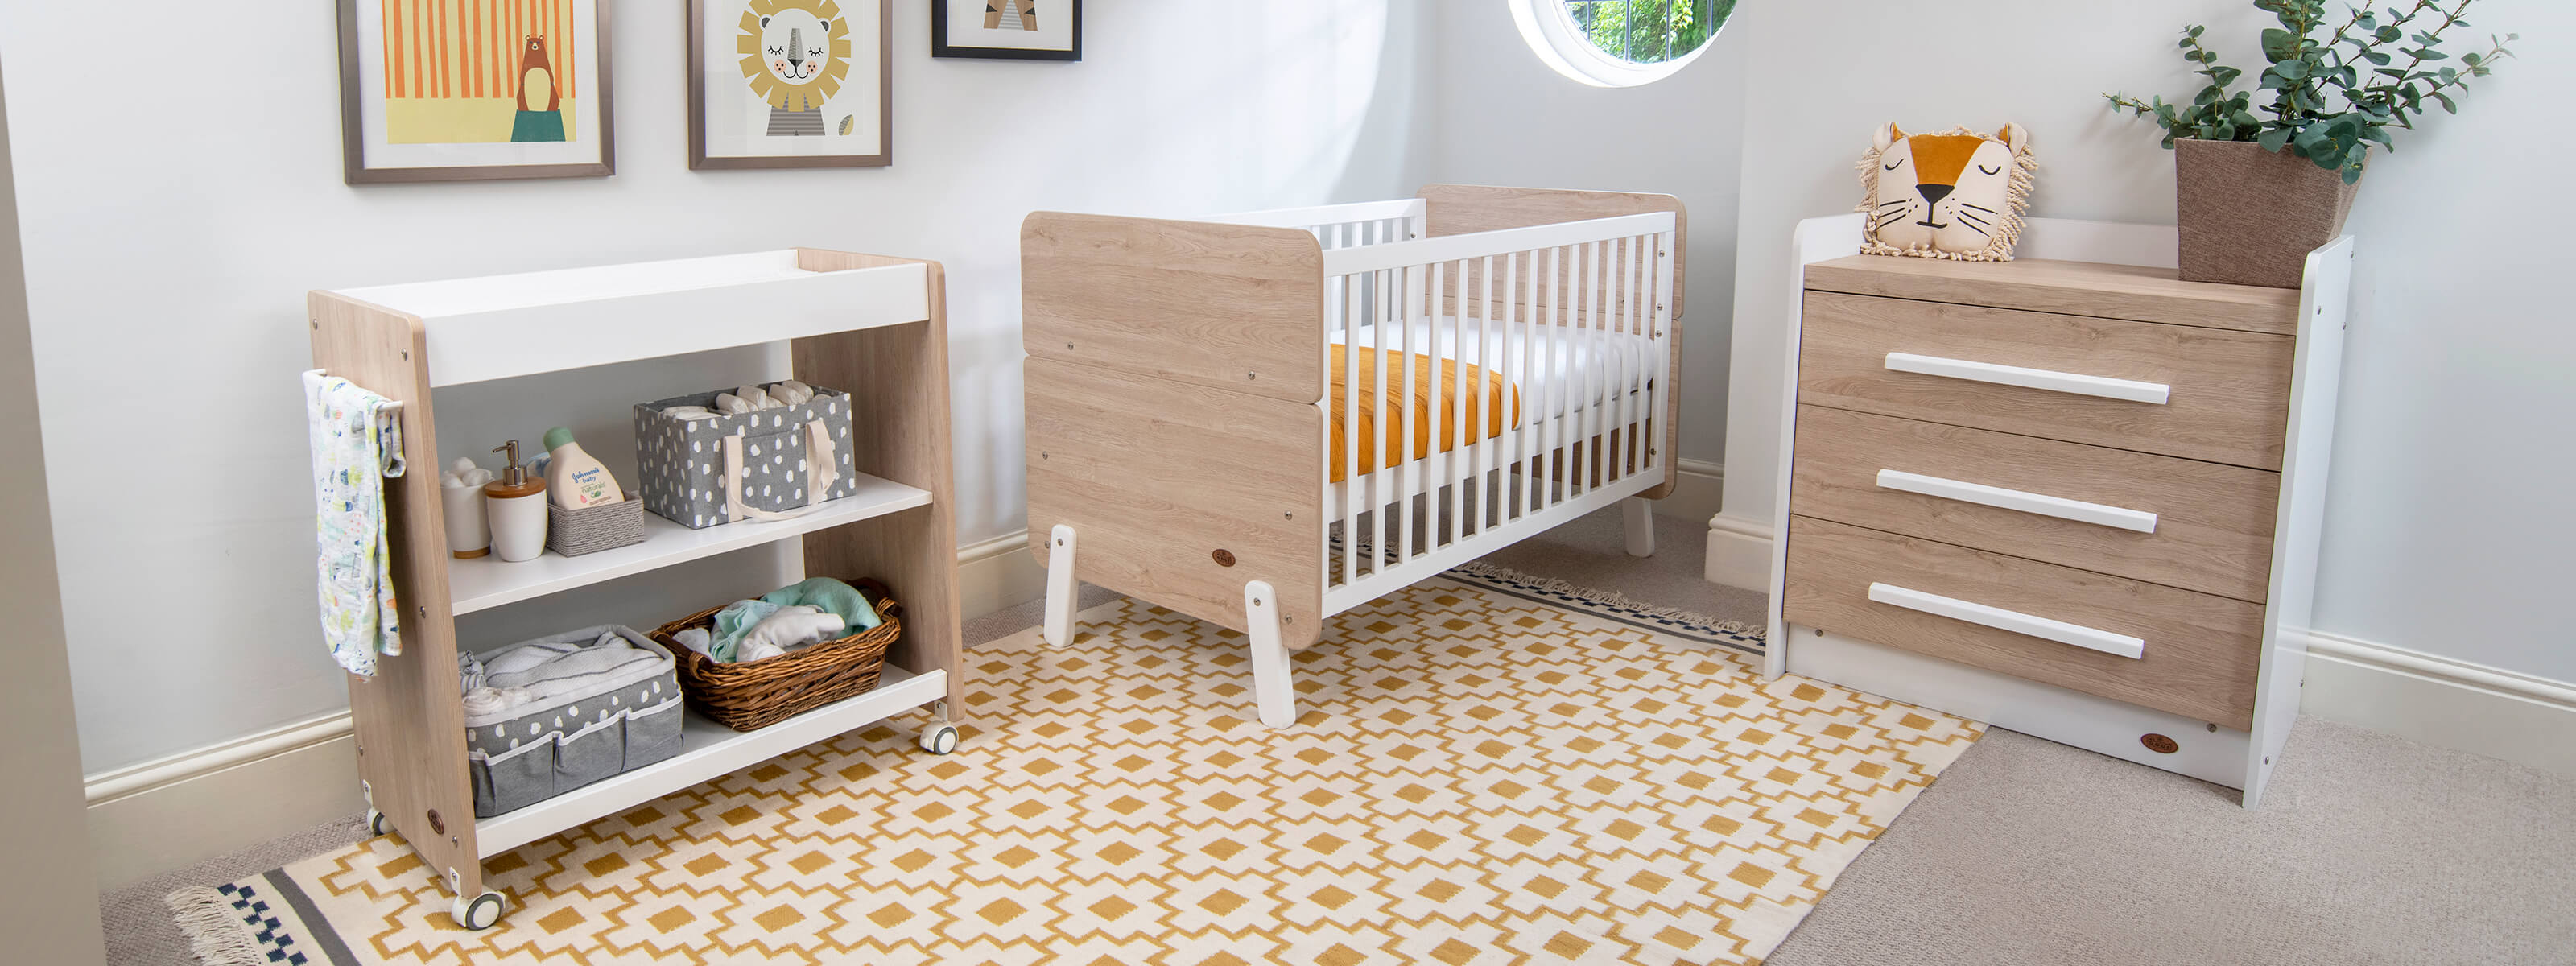 product_page_lifestyle_1600_x_600_natty_cot_bed_barley_white_oak_-02_forweb__2x